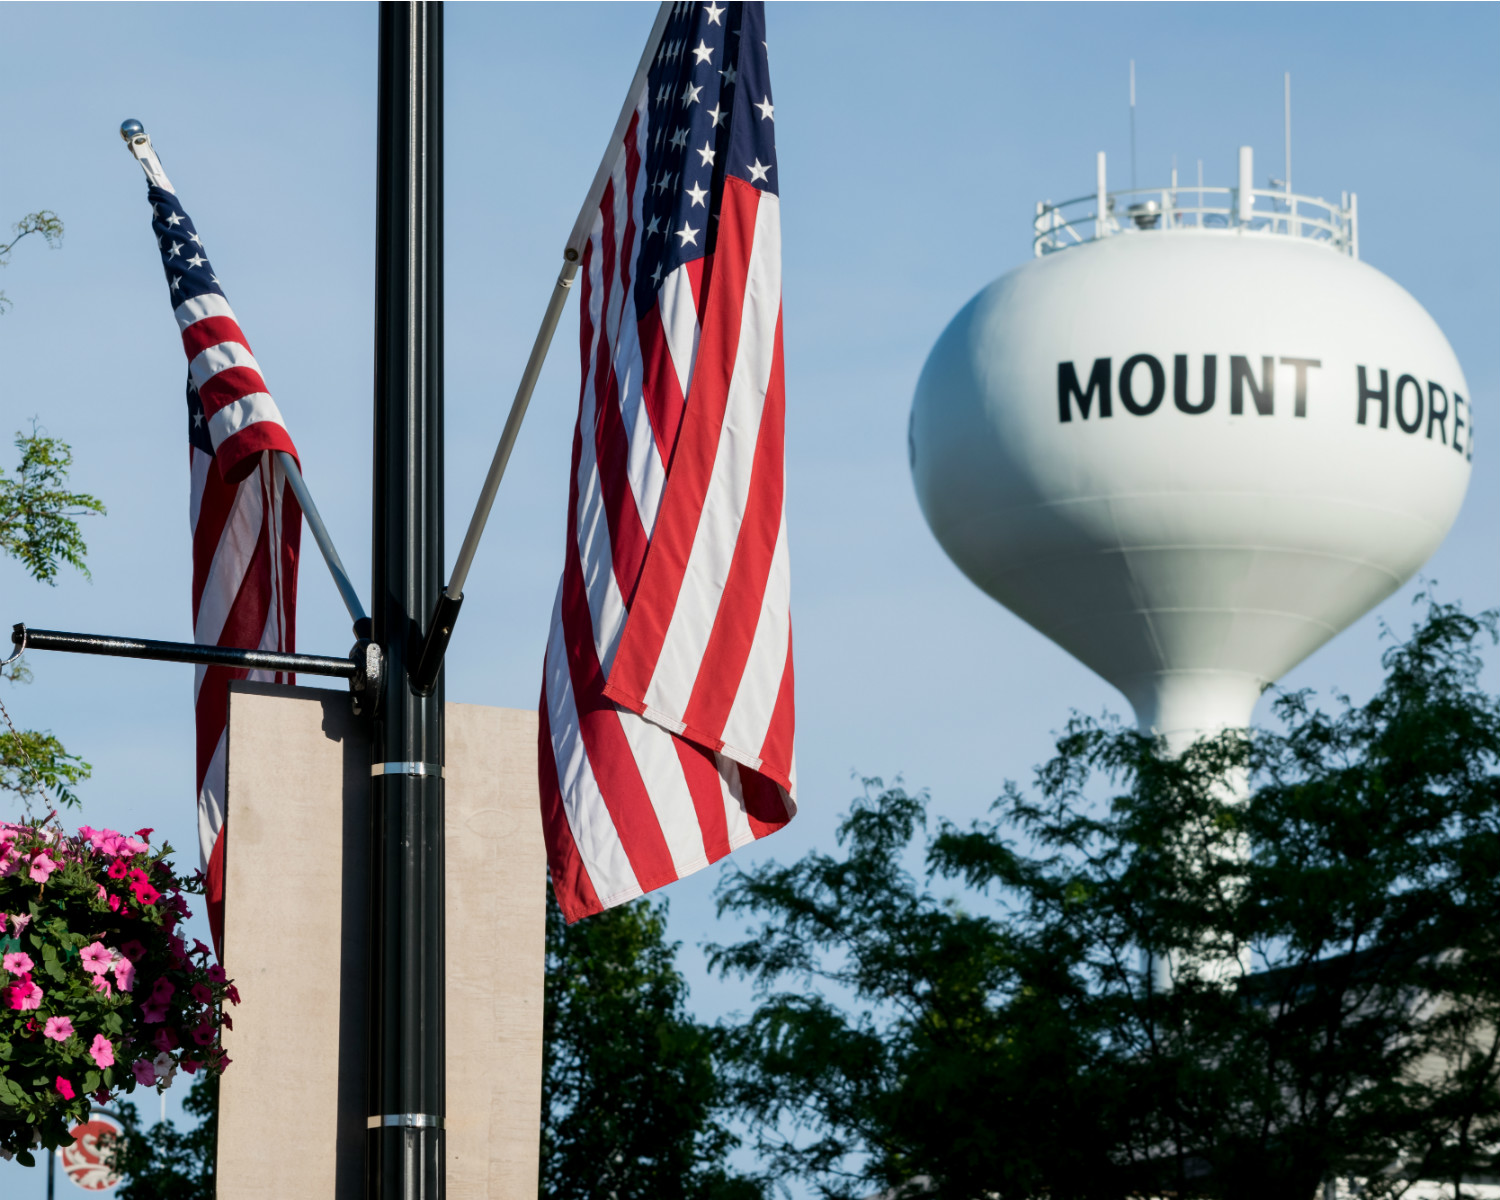 Mount Horeb Water Tower and Flags